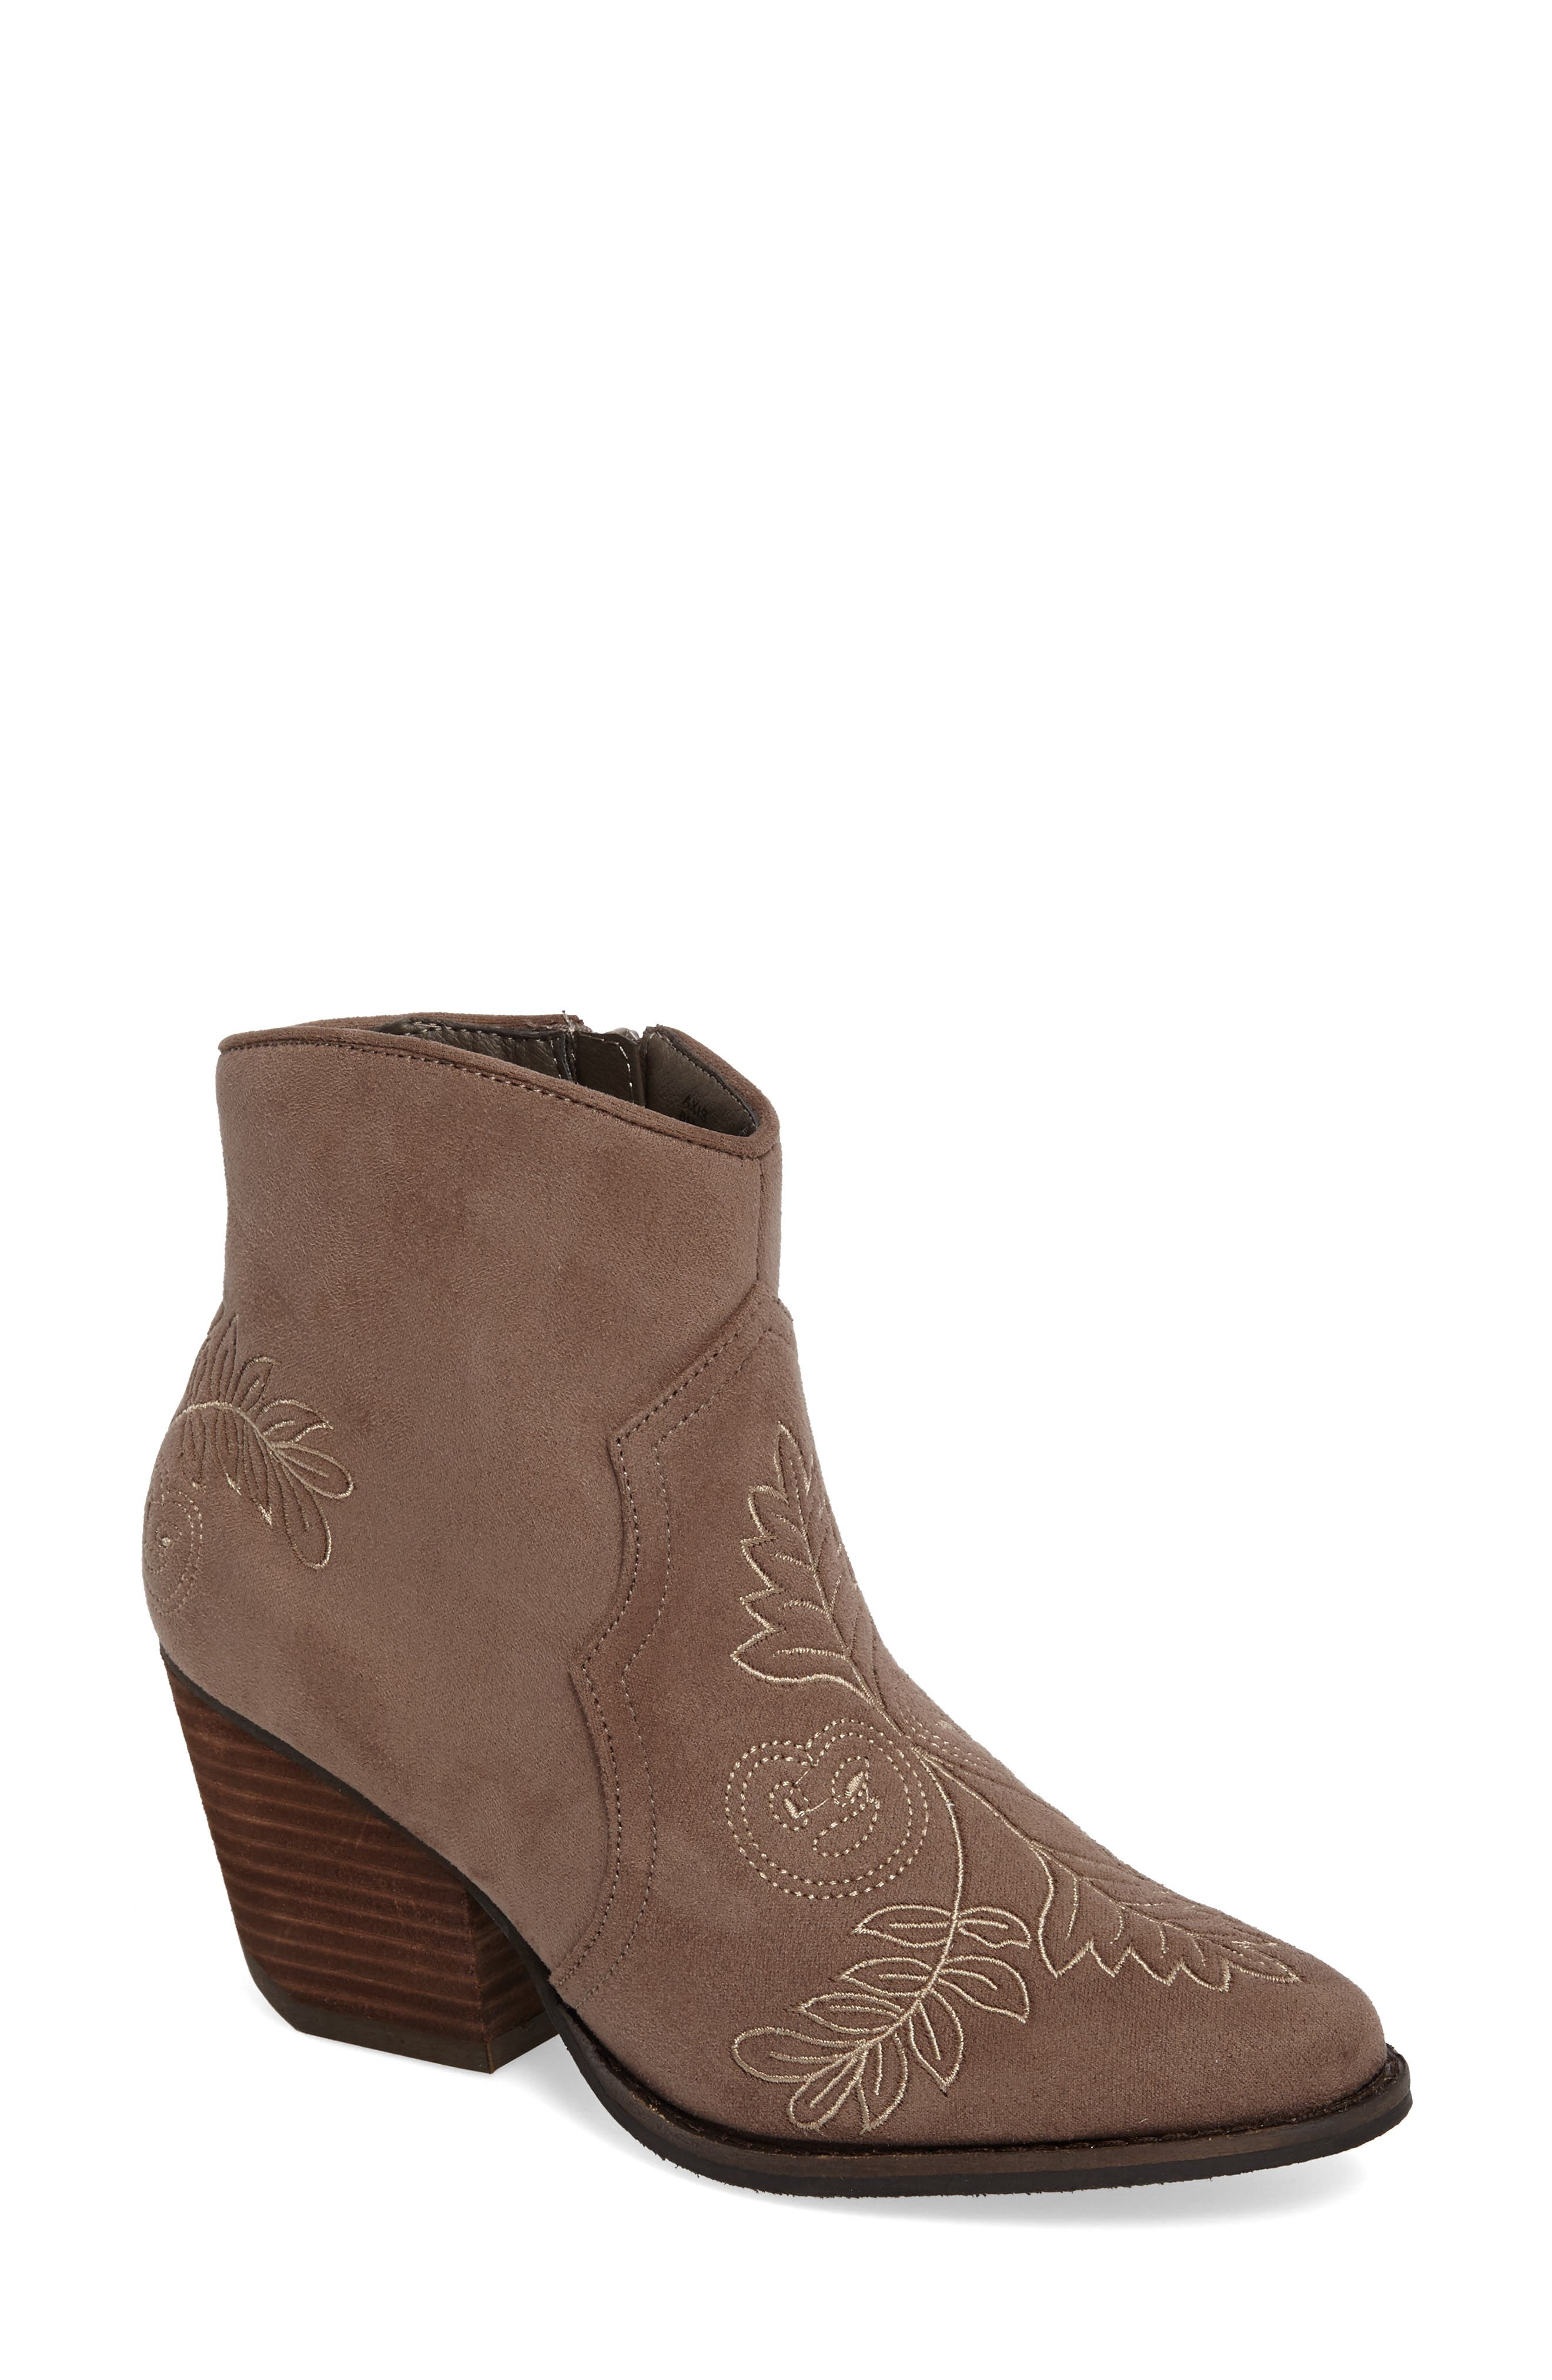 Axis Embroidered Bootie,                             Main thumbnail 1, color,                             Taupe Suede